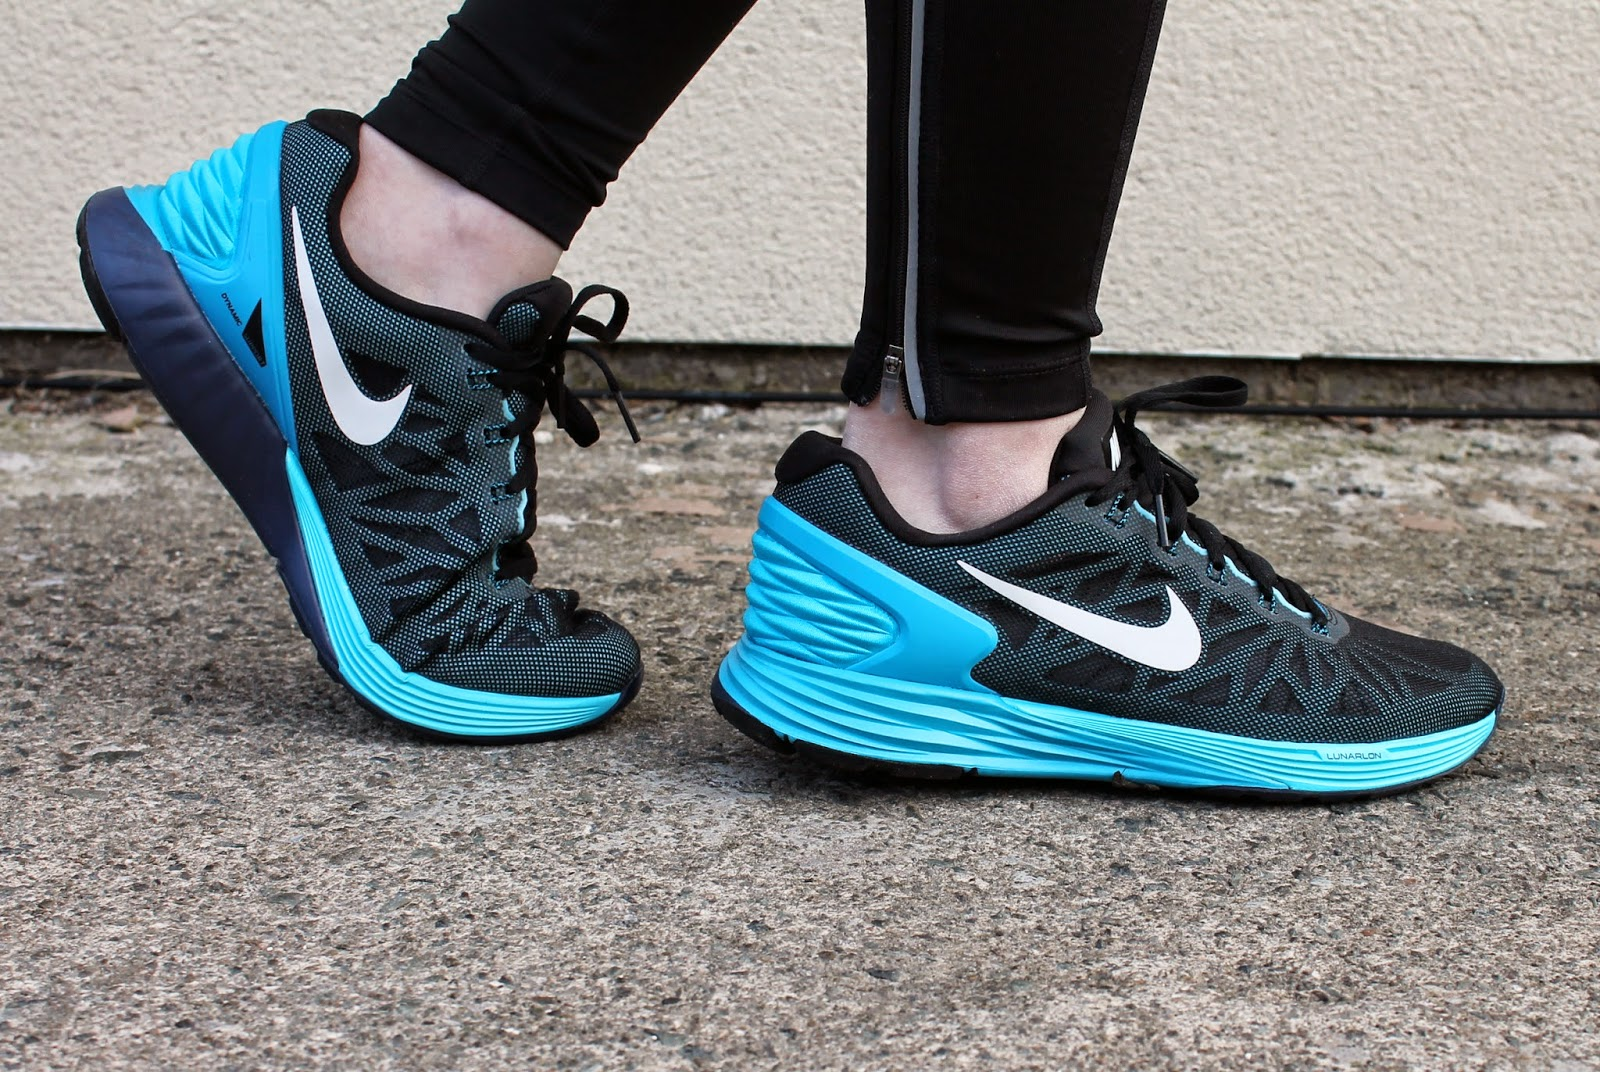 nike lunar glide womens trainers black and blue running shoes fashion blogger review